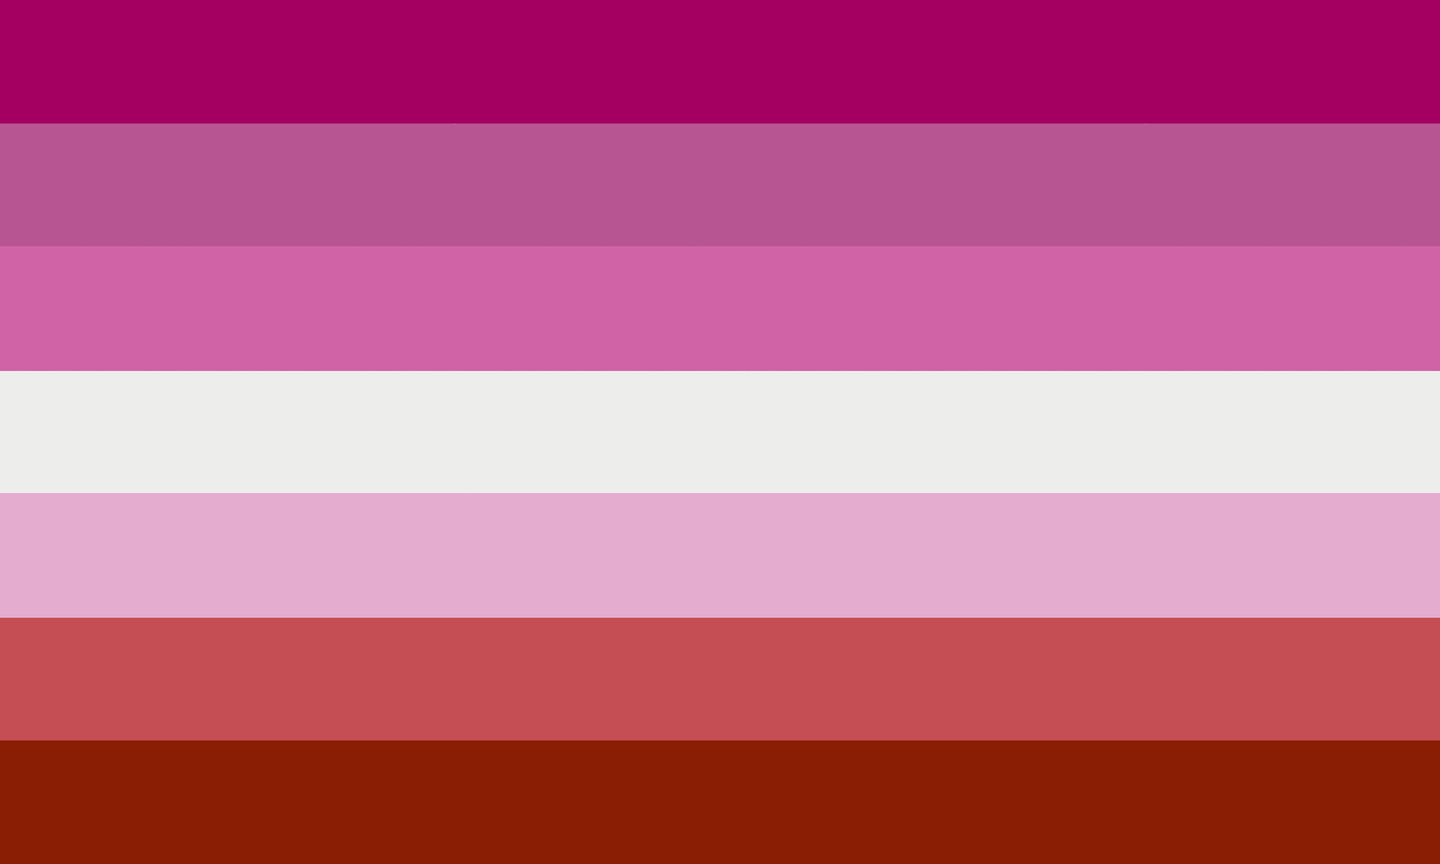 Pride/Equality Flags – LESBIAN